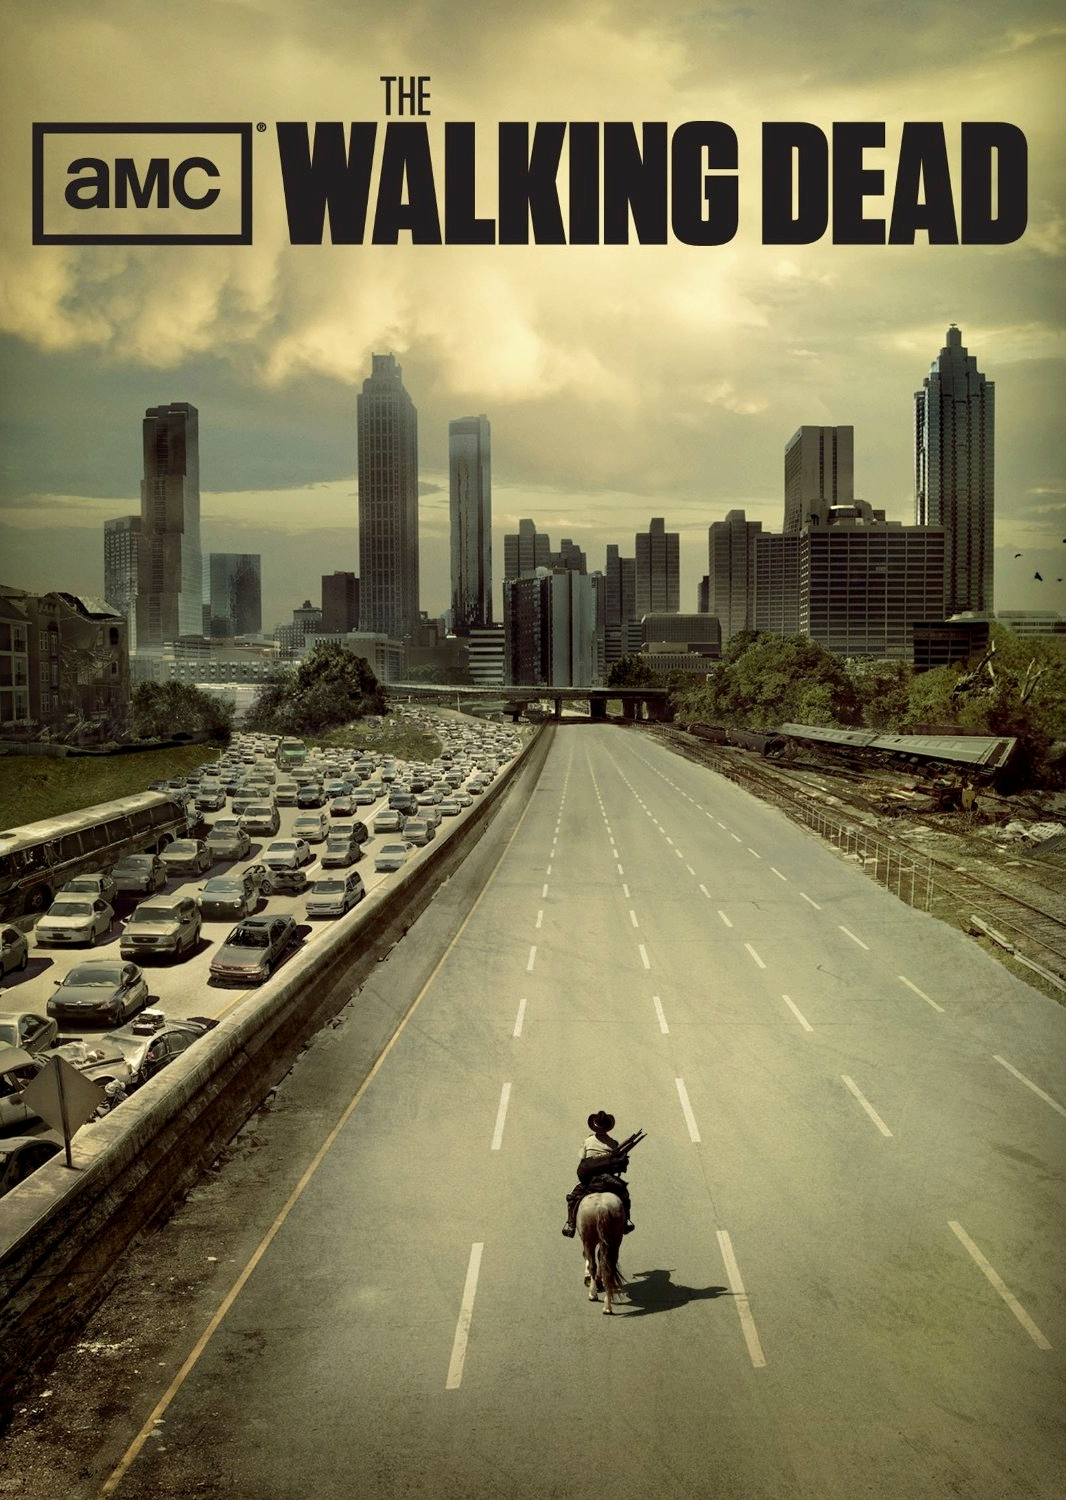 The Walking Dead The Walking Dead Walking Dead Film